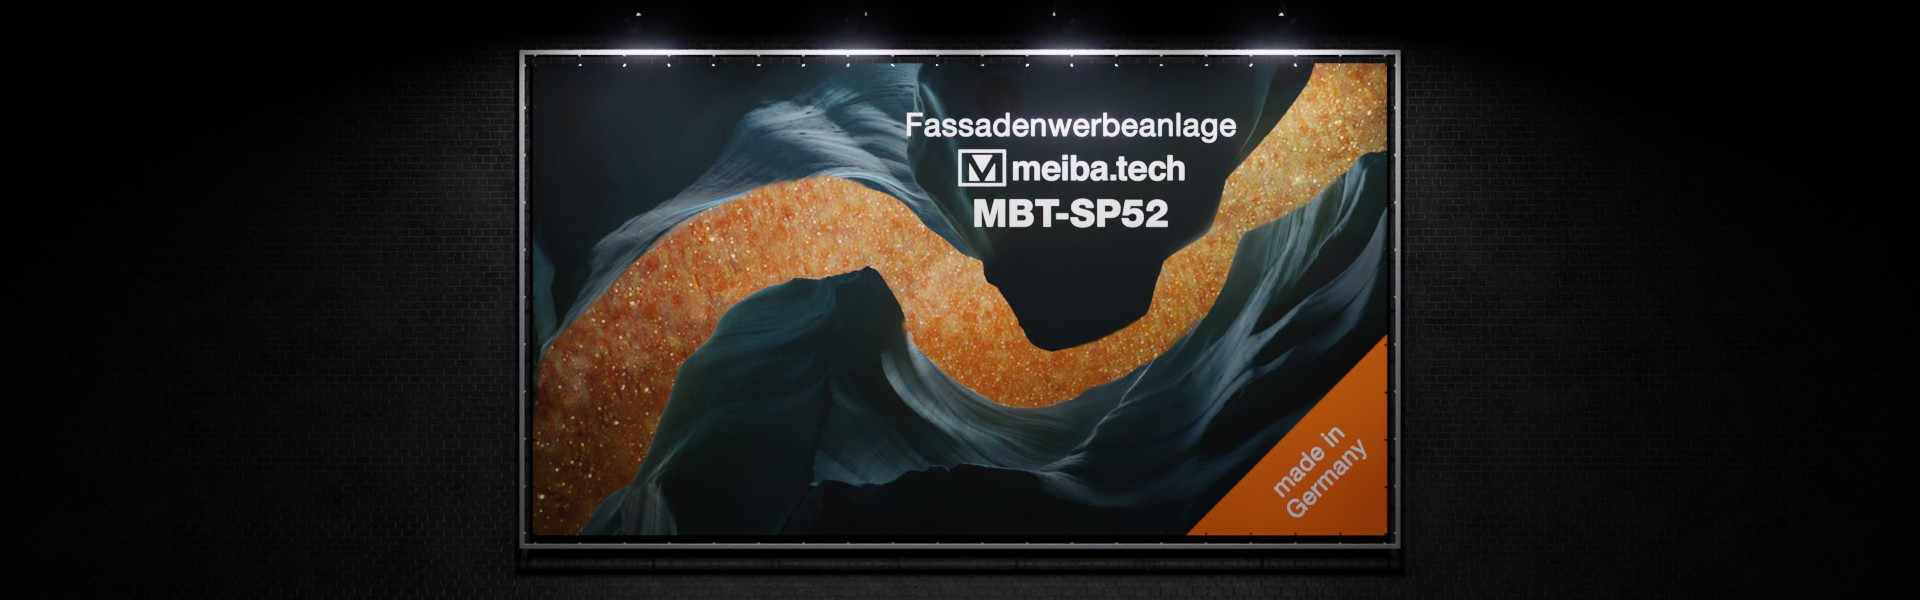 MBT-SP52: Modular advertising system for attaching facade advertising, front view illuminated